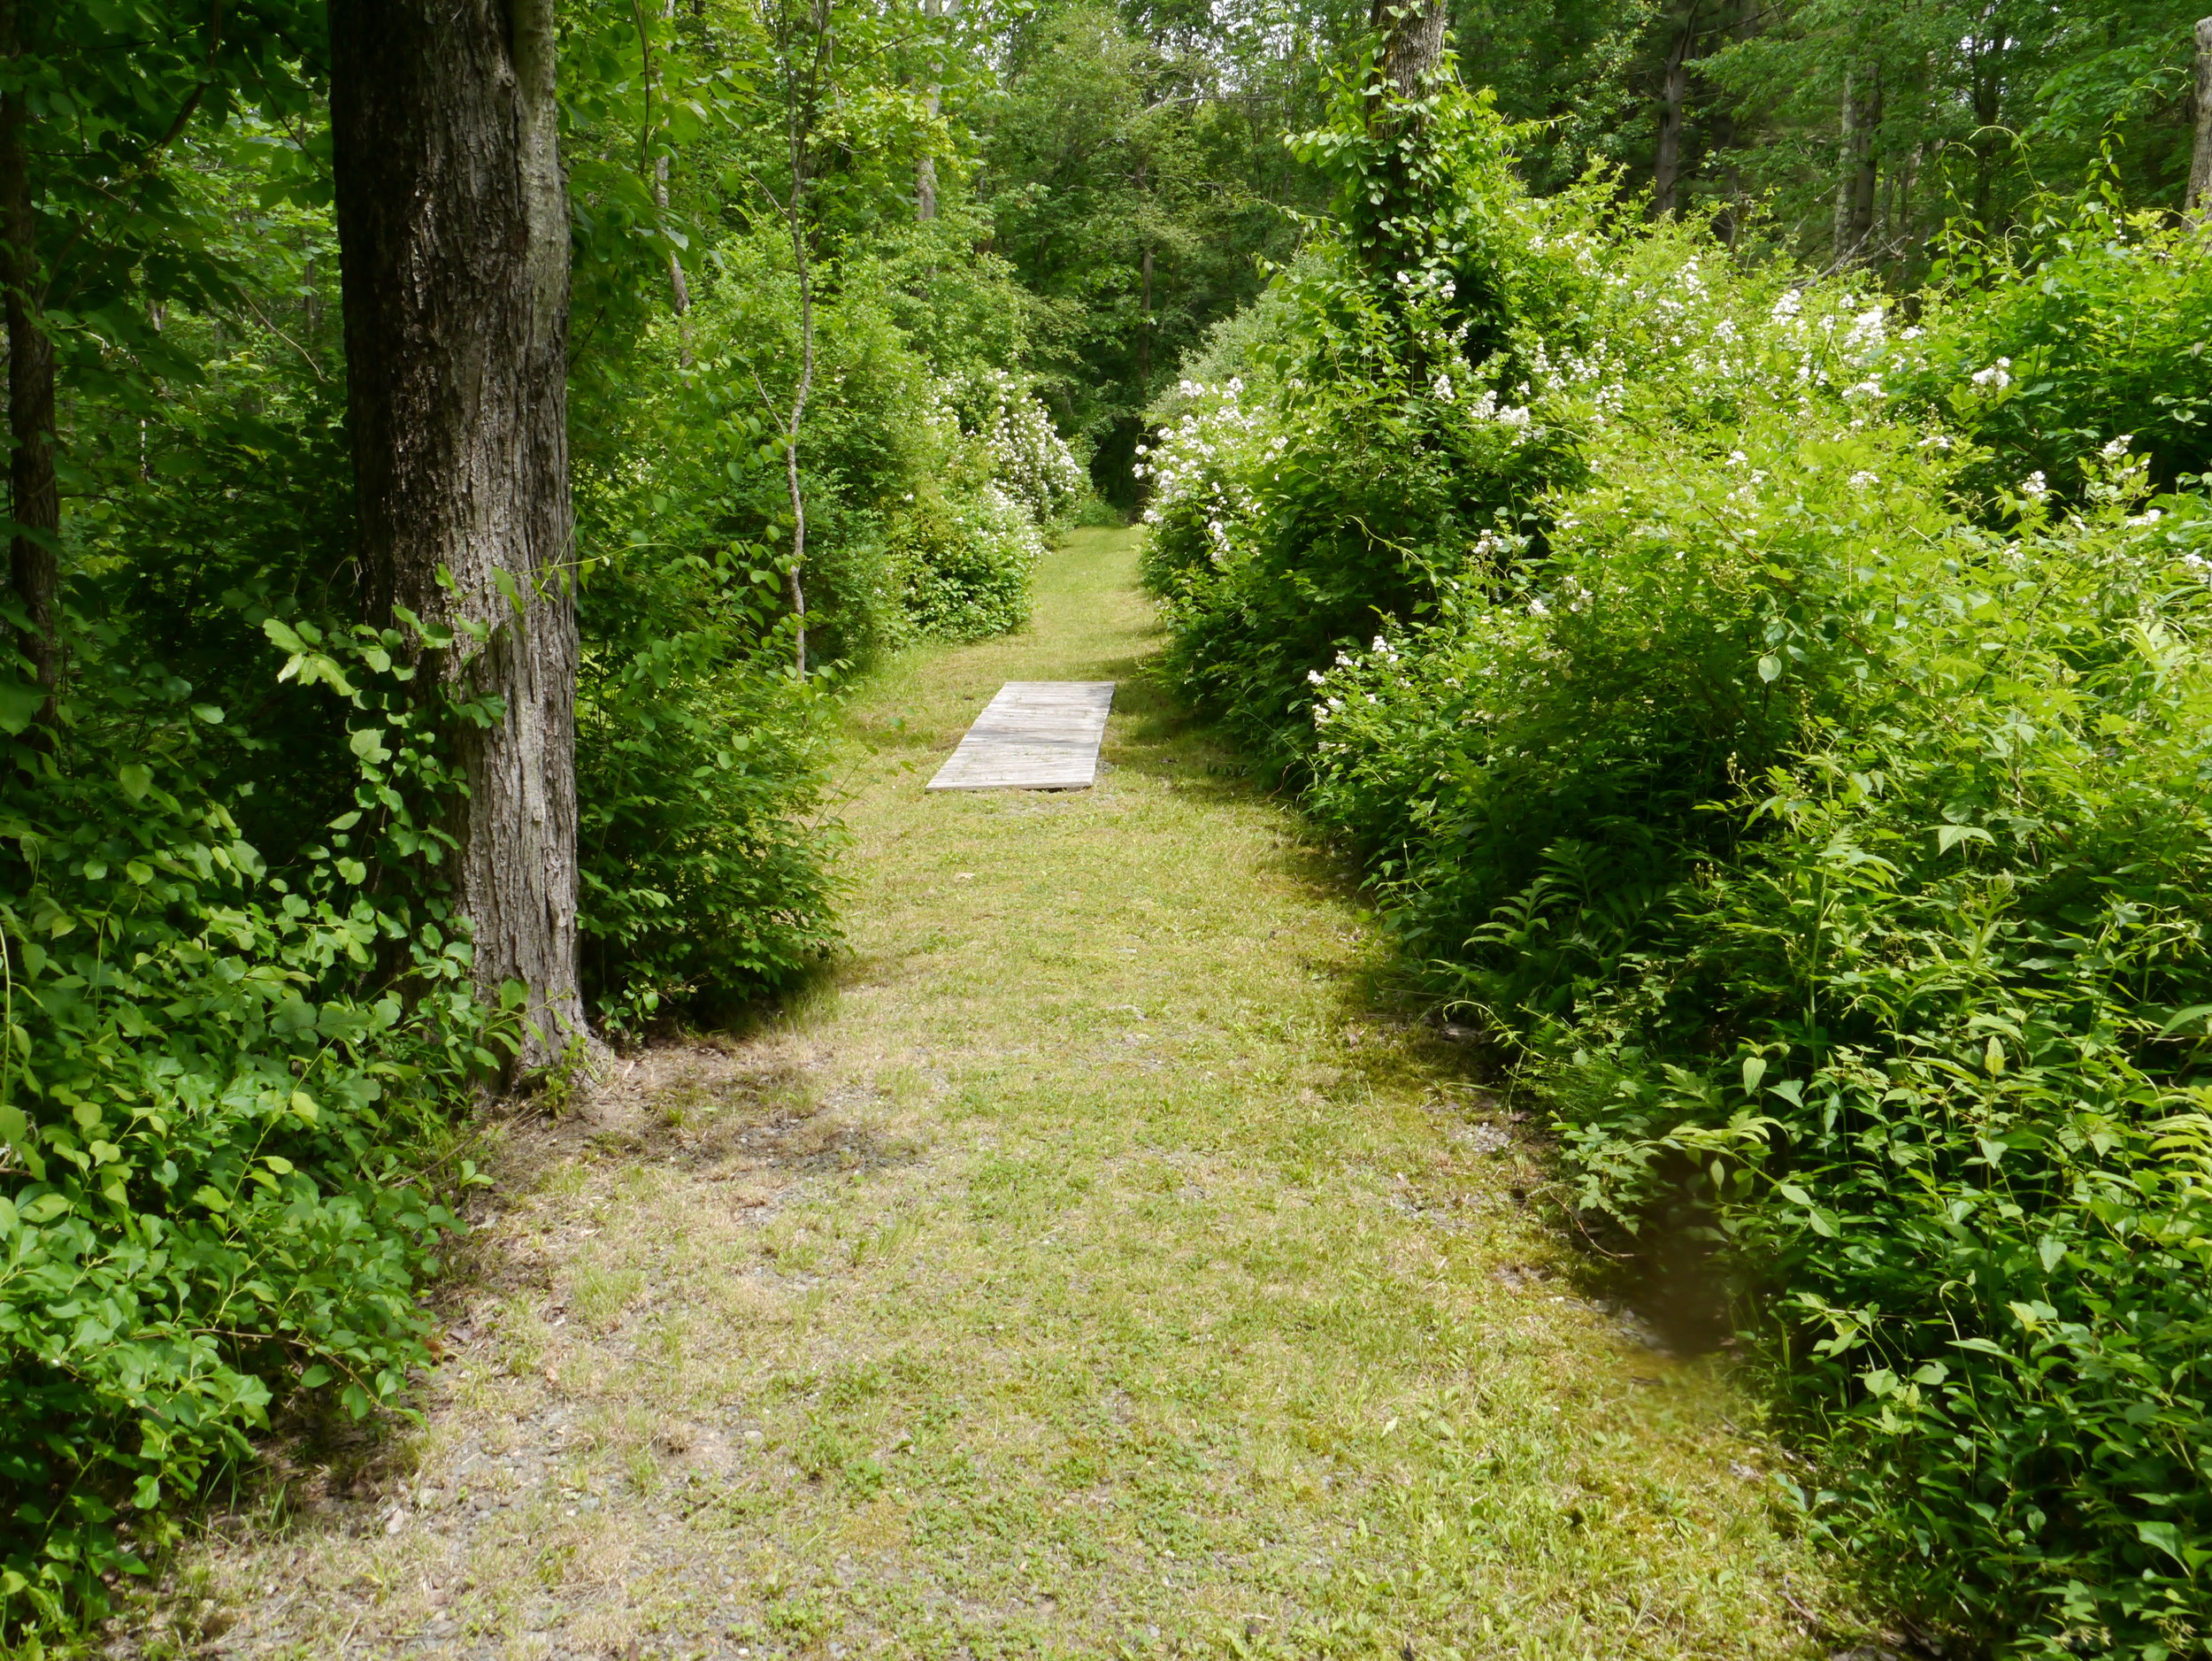 Beautiful path into the woods. Kareth Whitchurch took this photo on retreat June 2018.